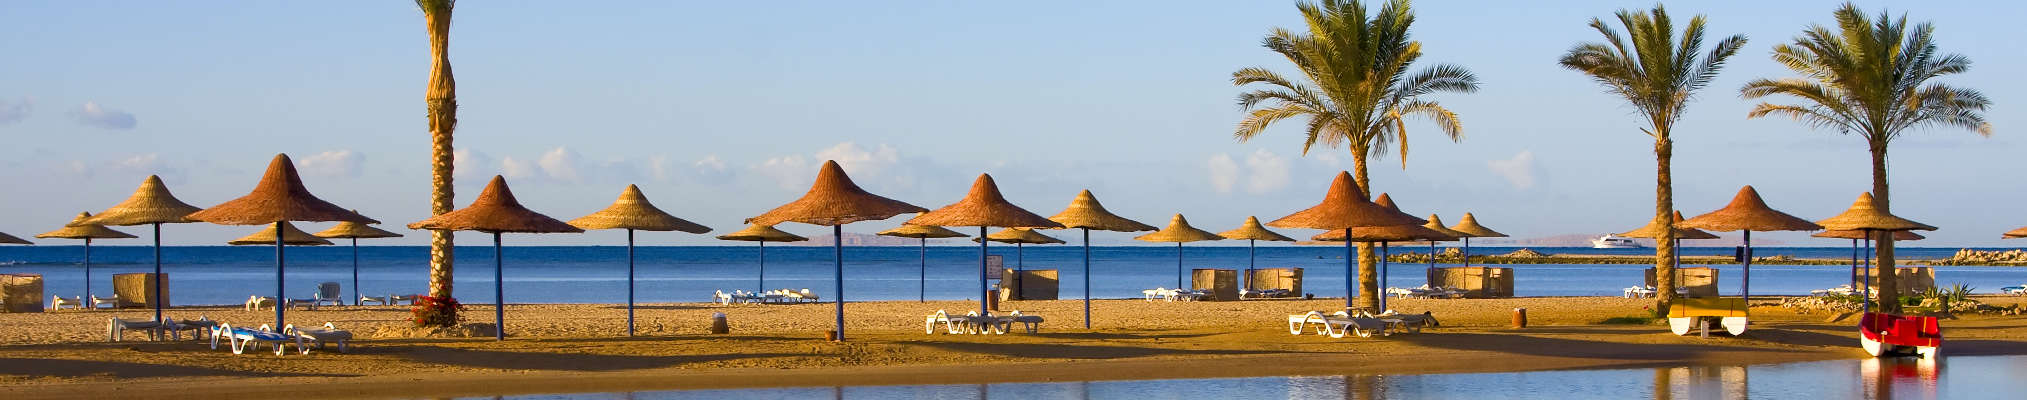 Vacanze Top resort marsa alam